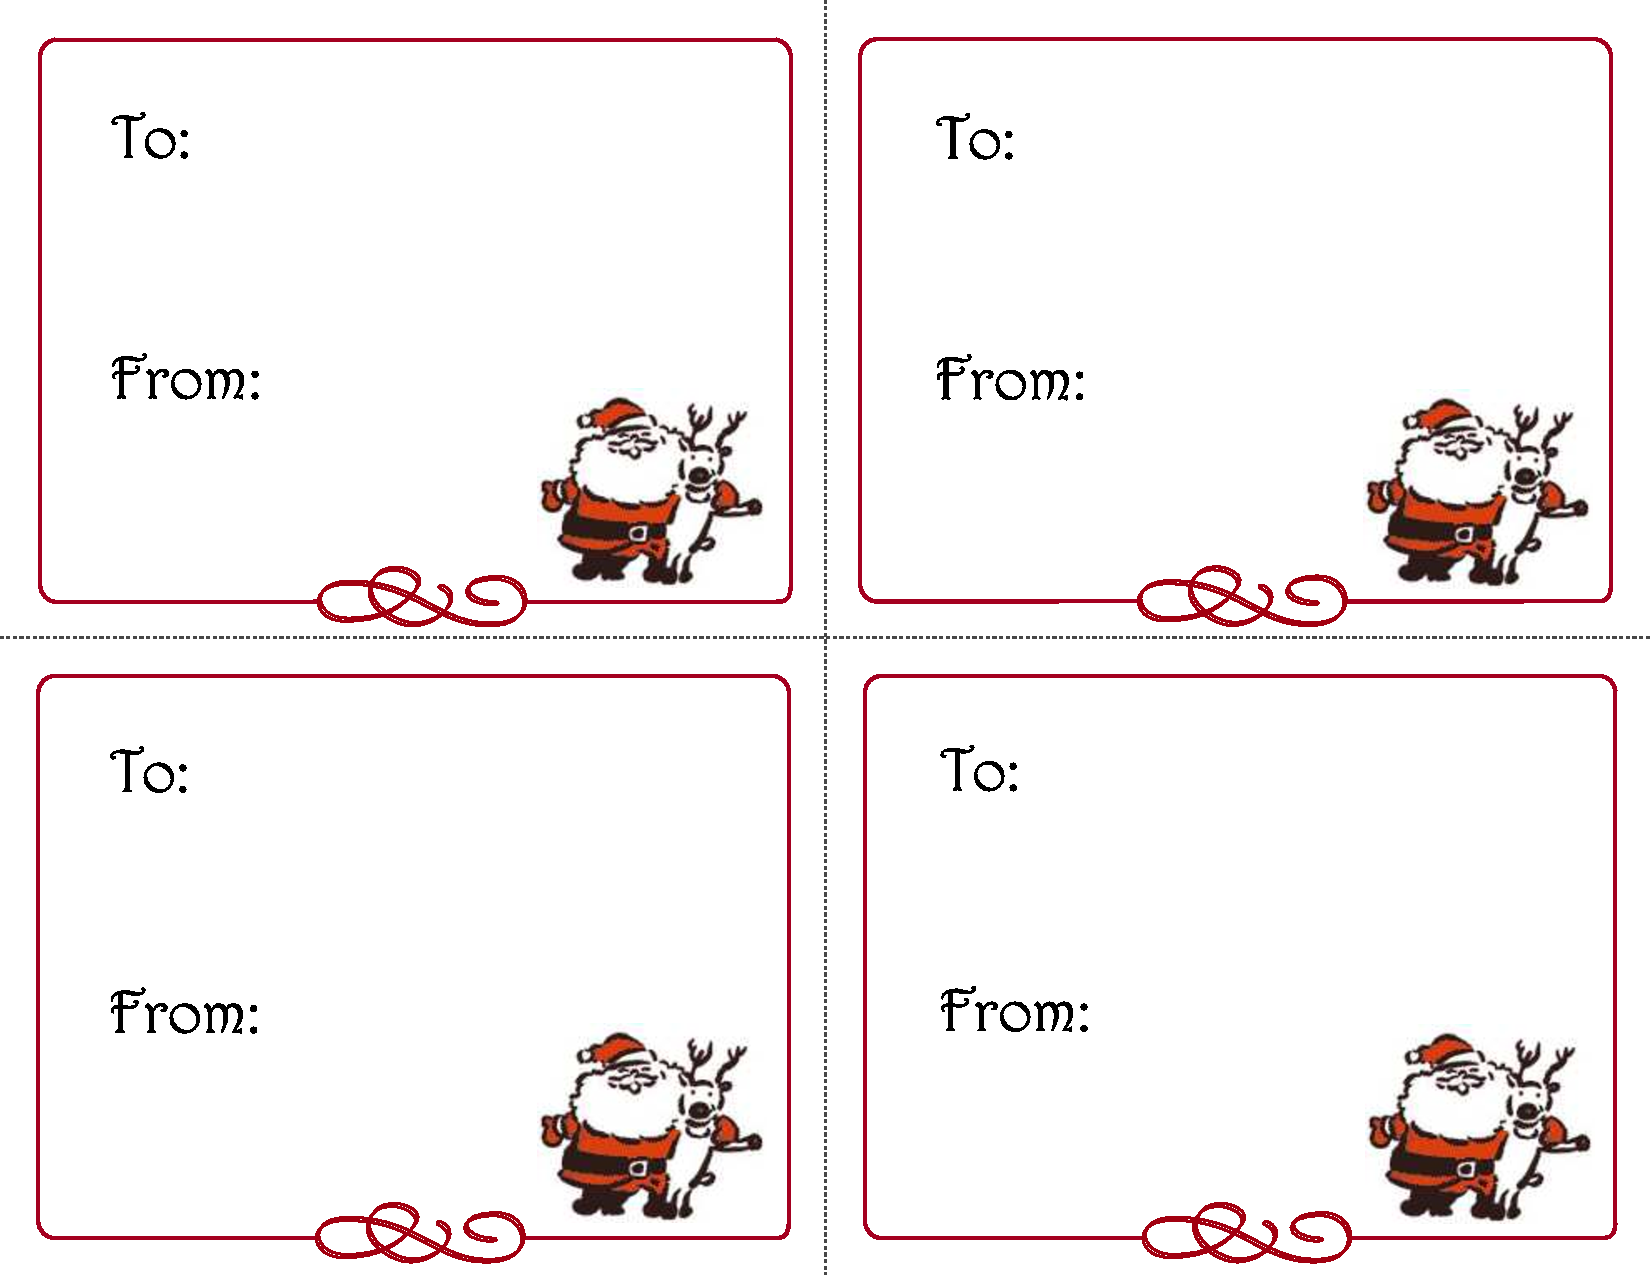 doc christmas voucher template homemade vouchers christmas voucher templates christmas voucher templates christmas voucher template